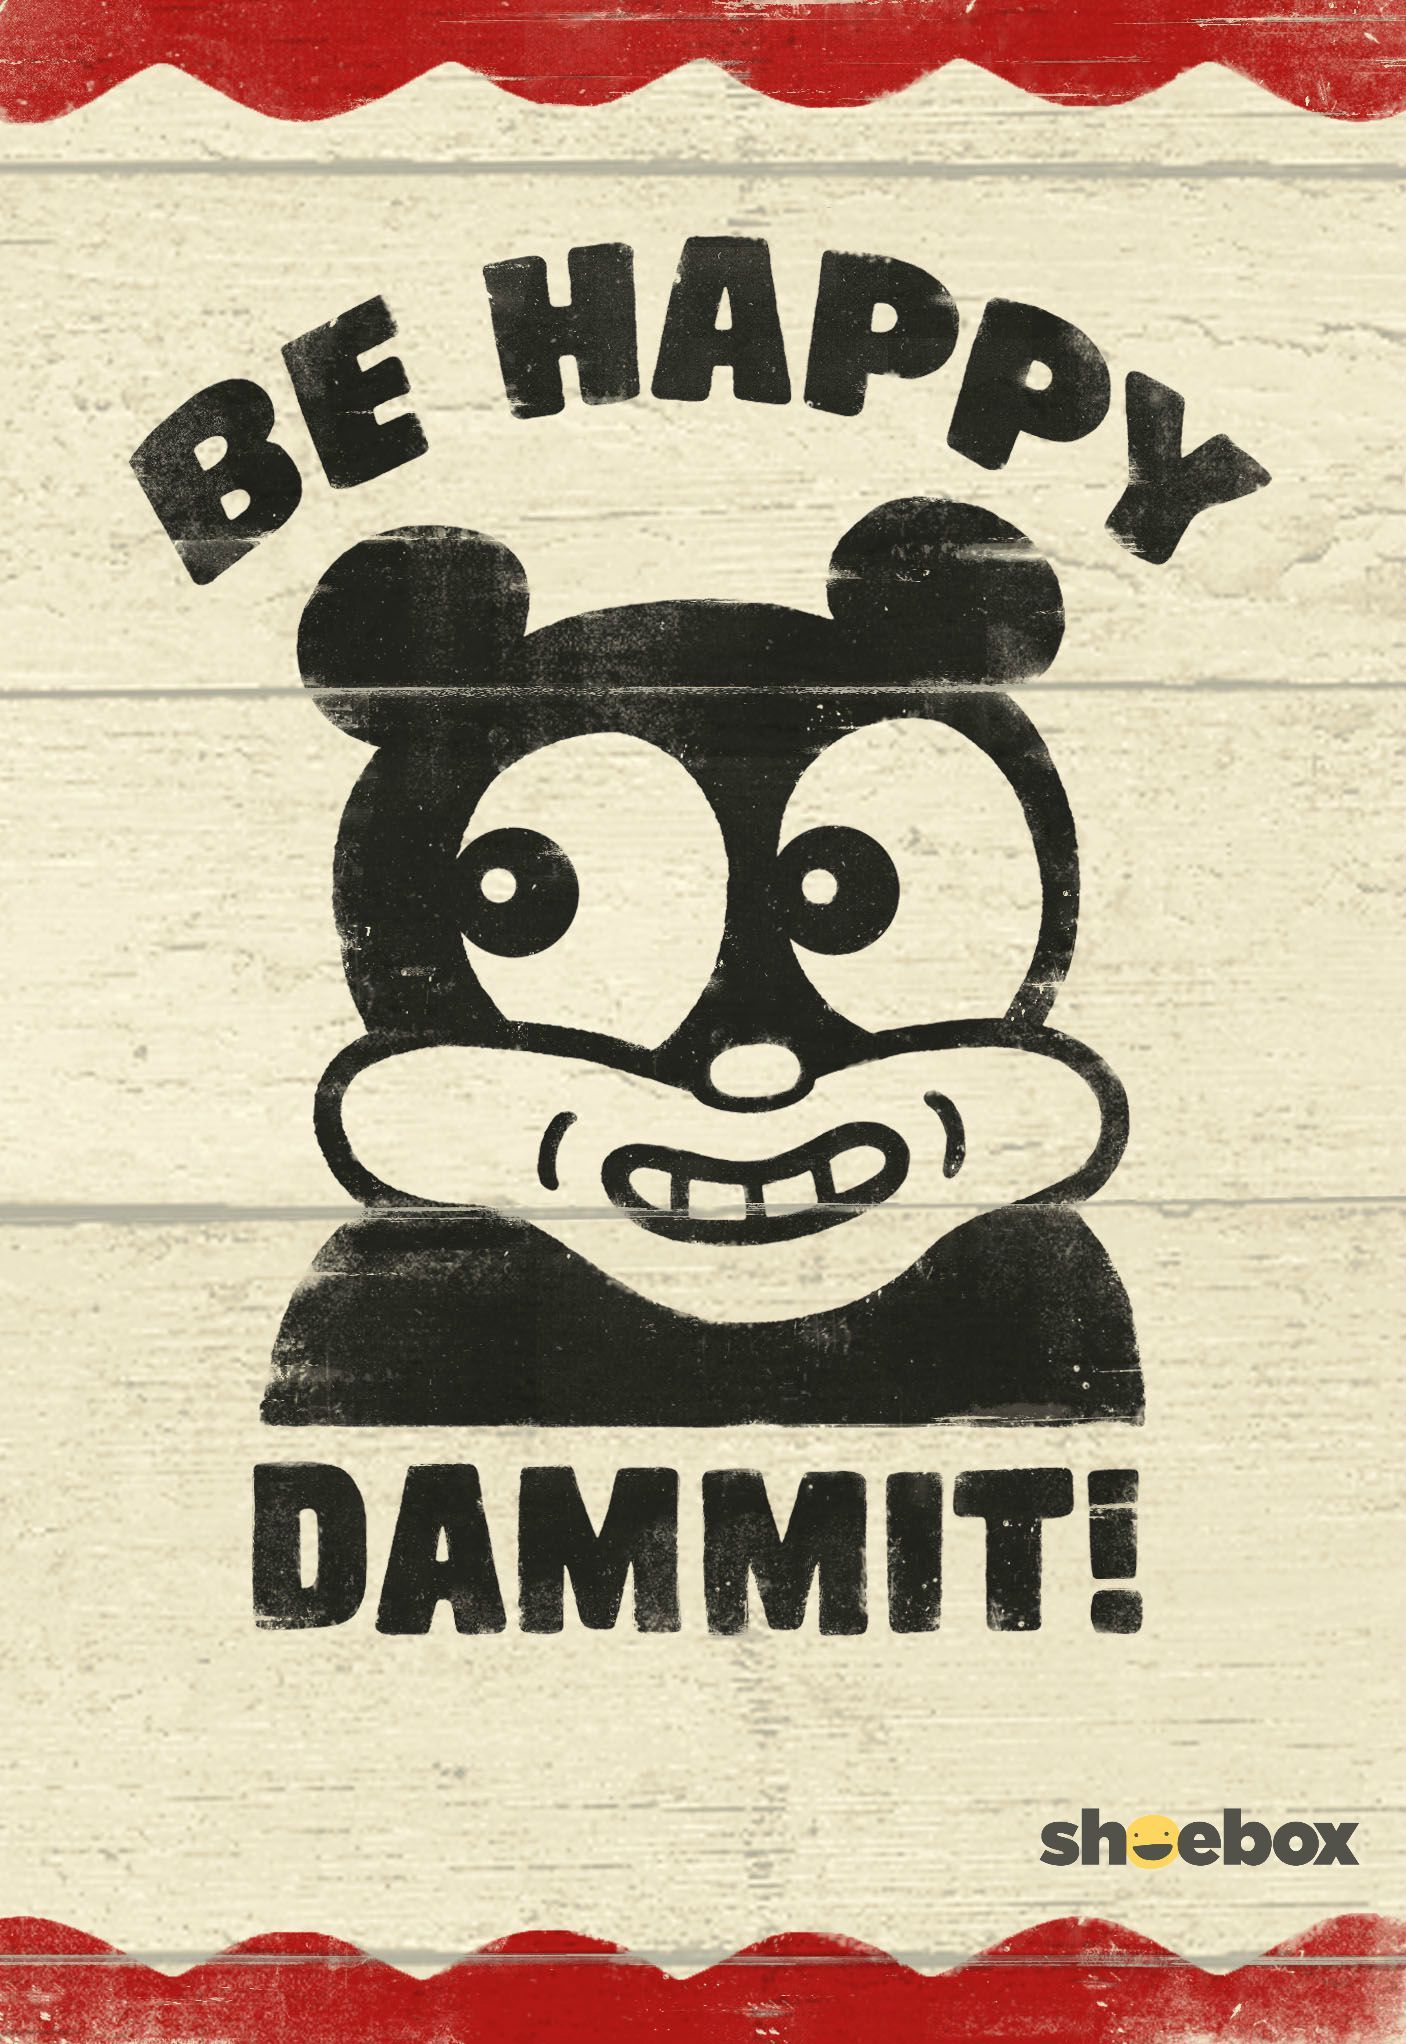 Turn that frown upside down and be happy dammit! This simple, yet